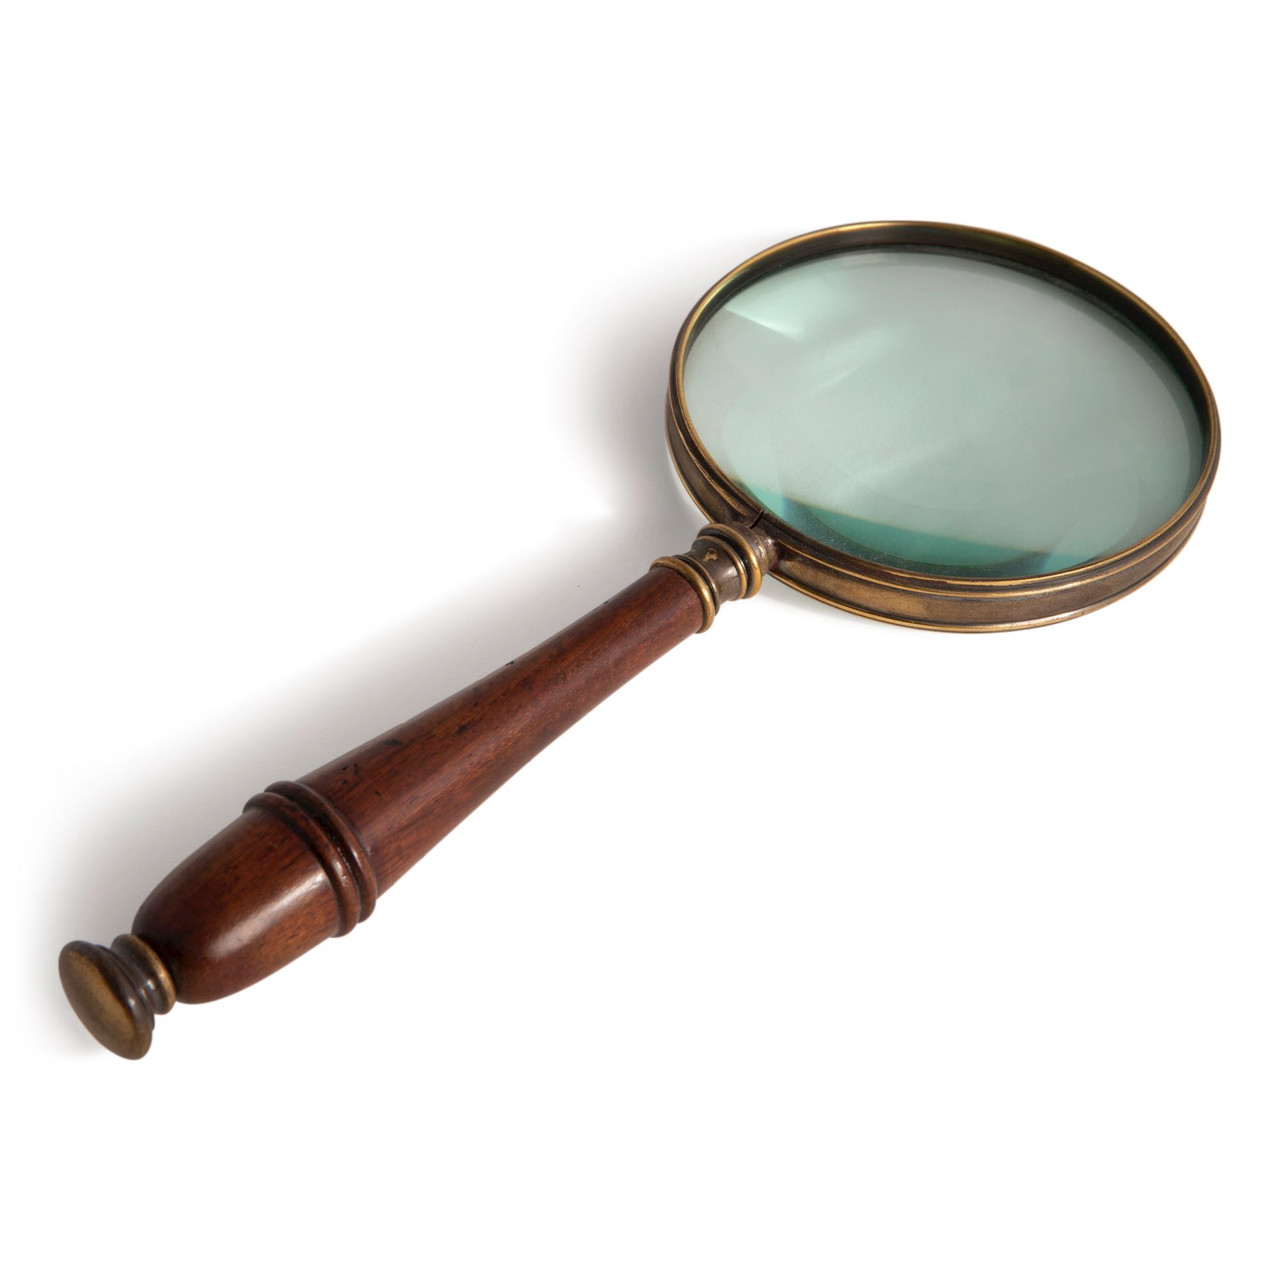 Magnifier Magnifying Glass Bronze Wooden Handle 3x Reading Device